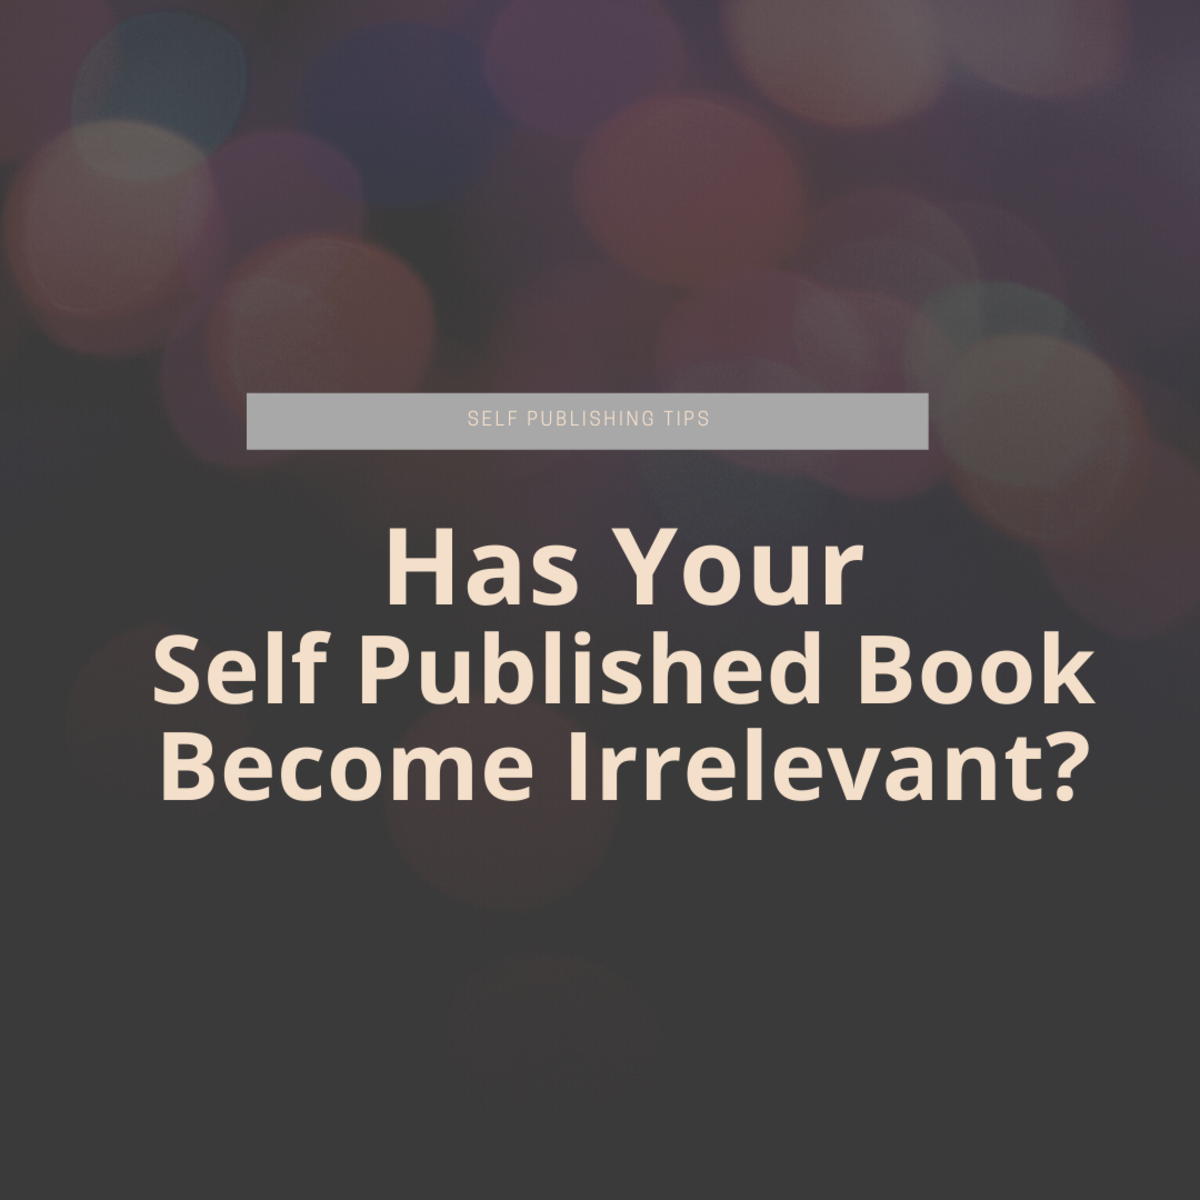 Has Your Self Published Book Become Irrelevant?